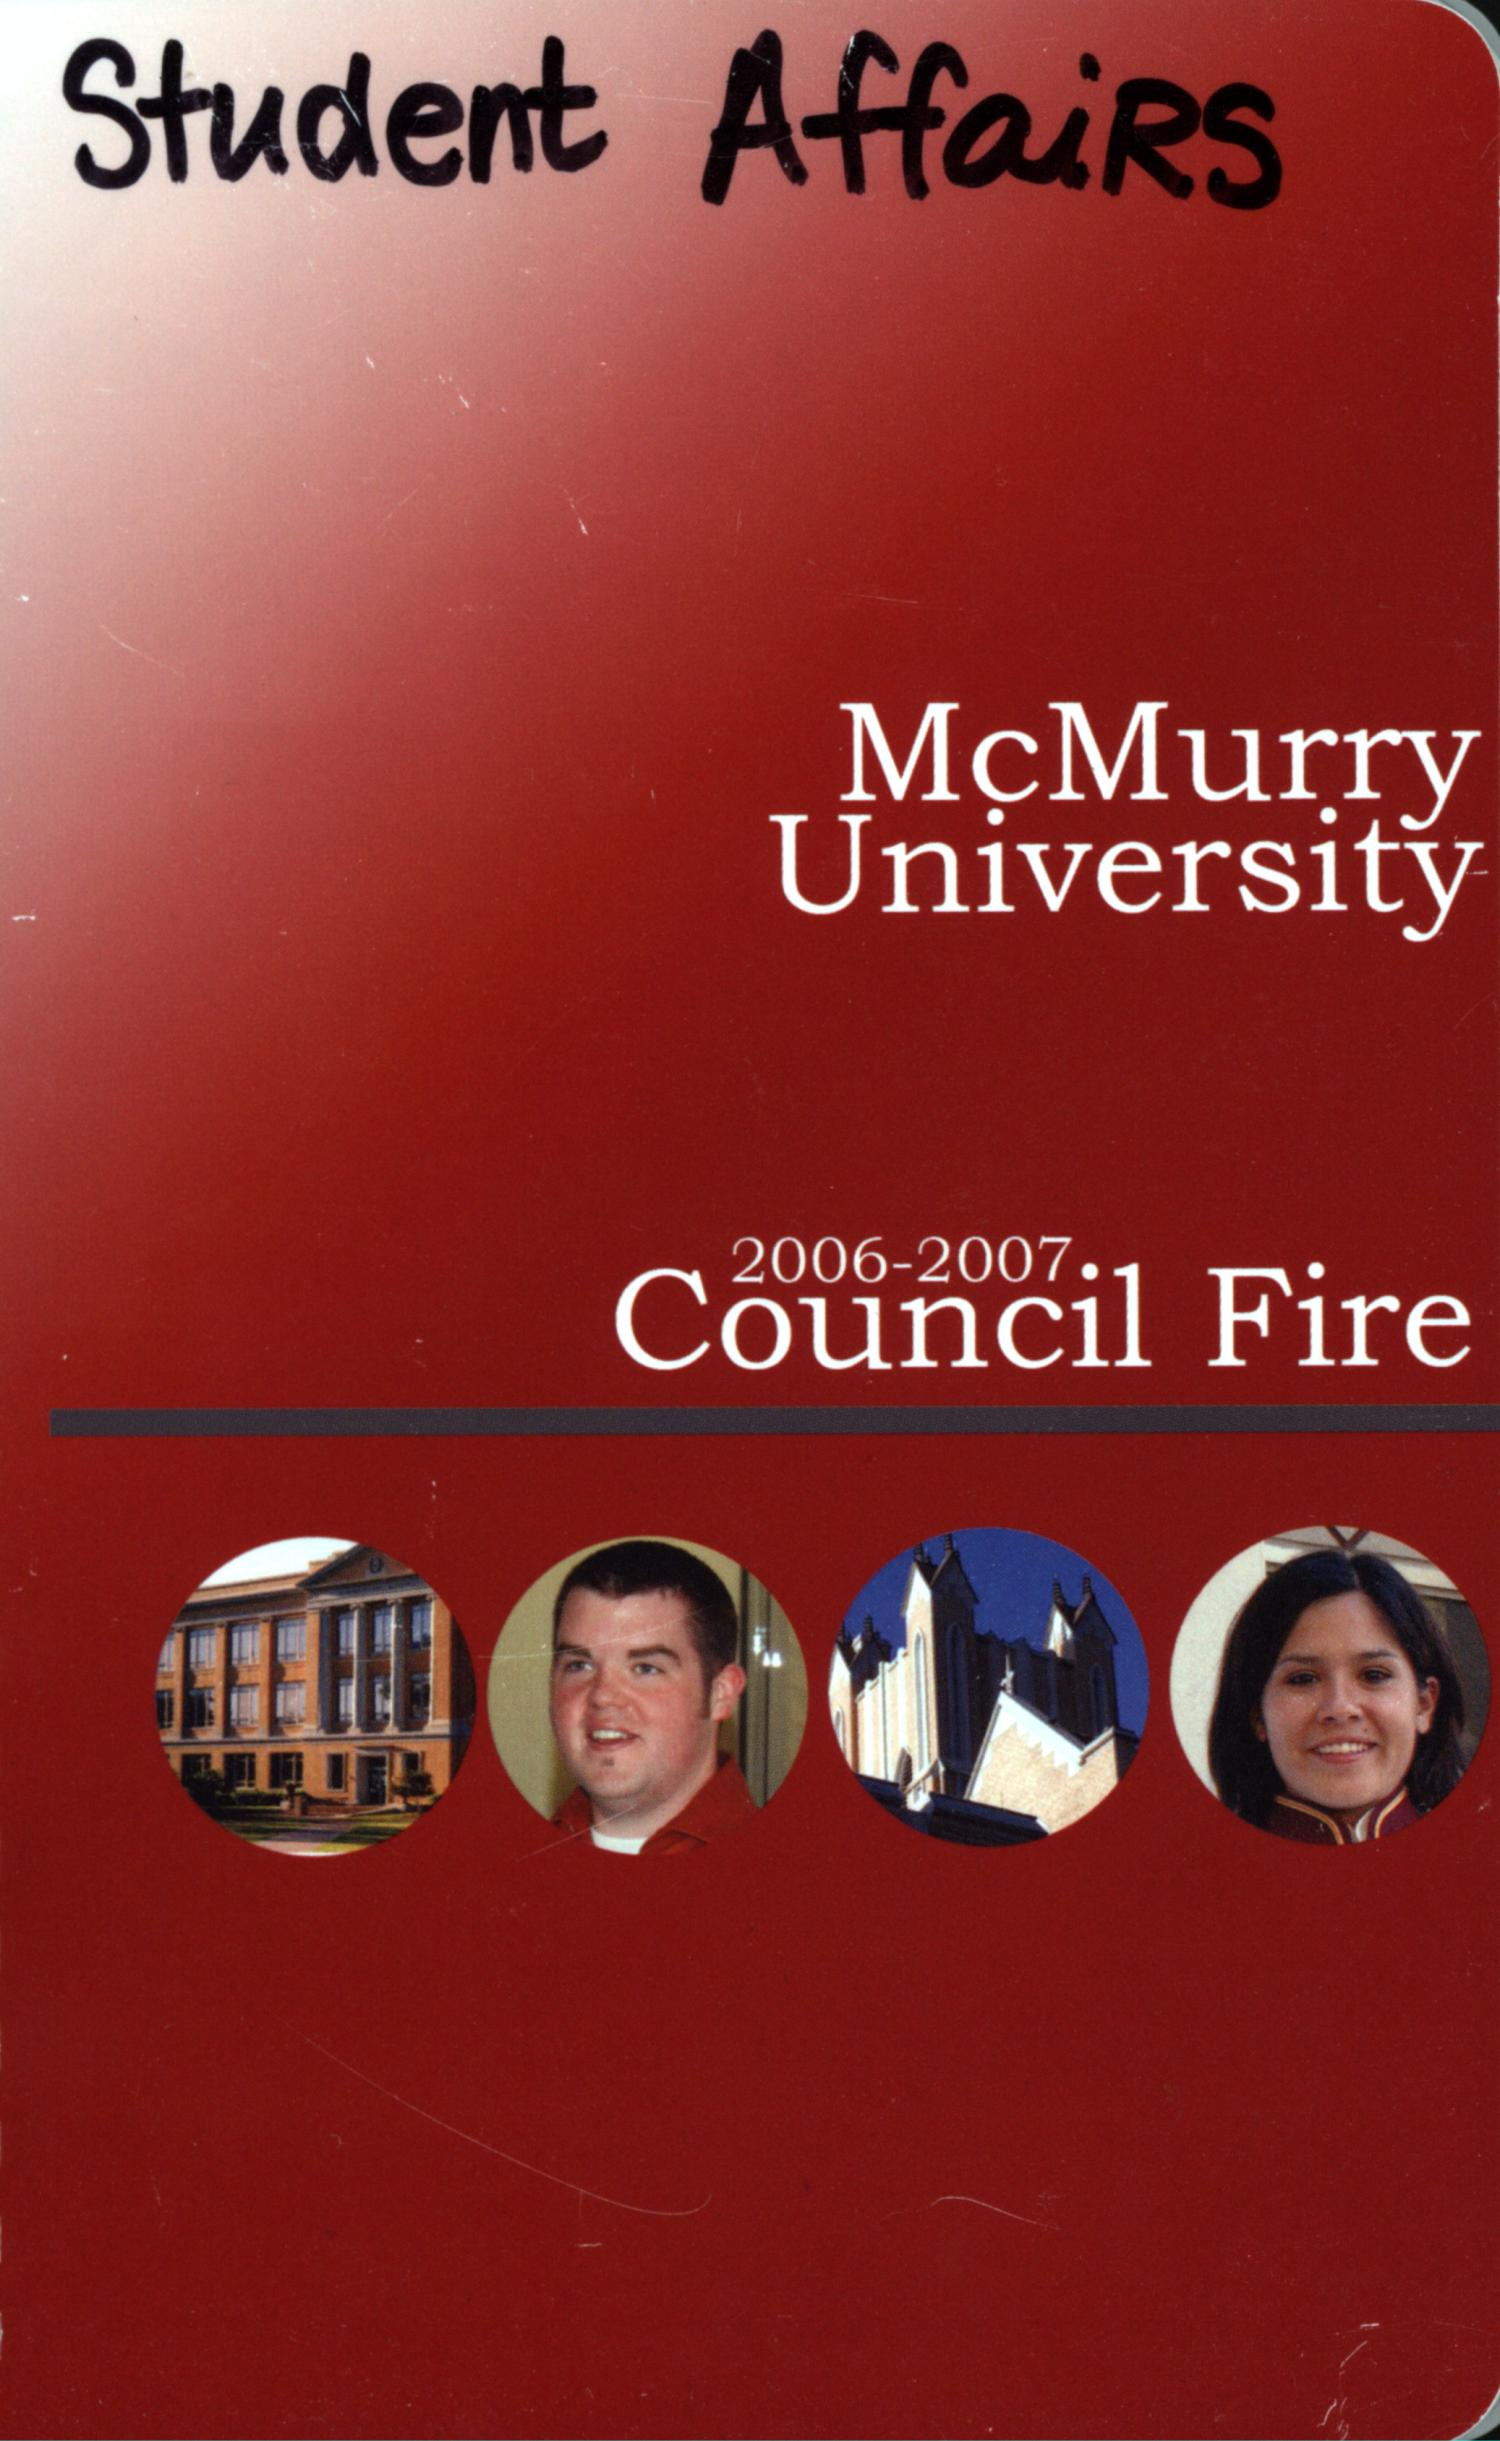 Council Fire, Handbook of McMurry University, 2006-2007                                                                                                      Front Cover